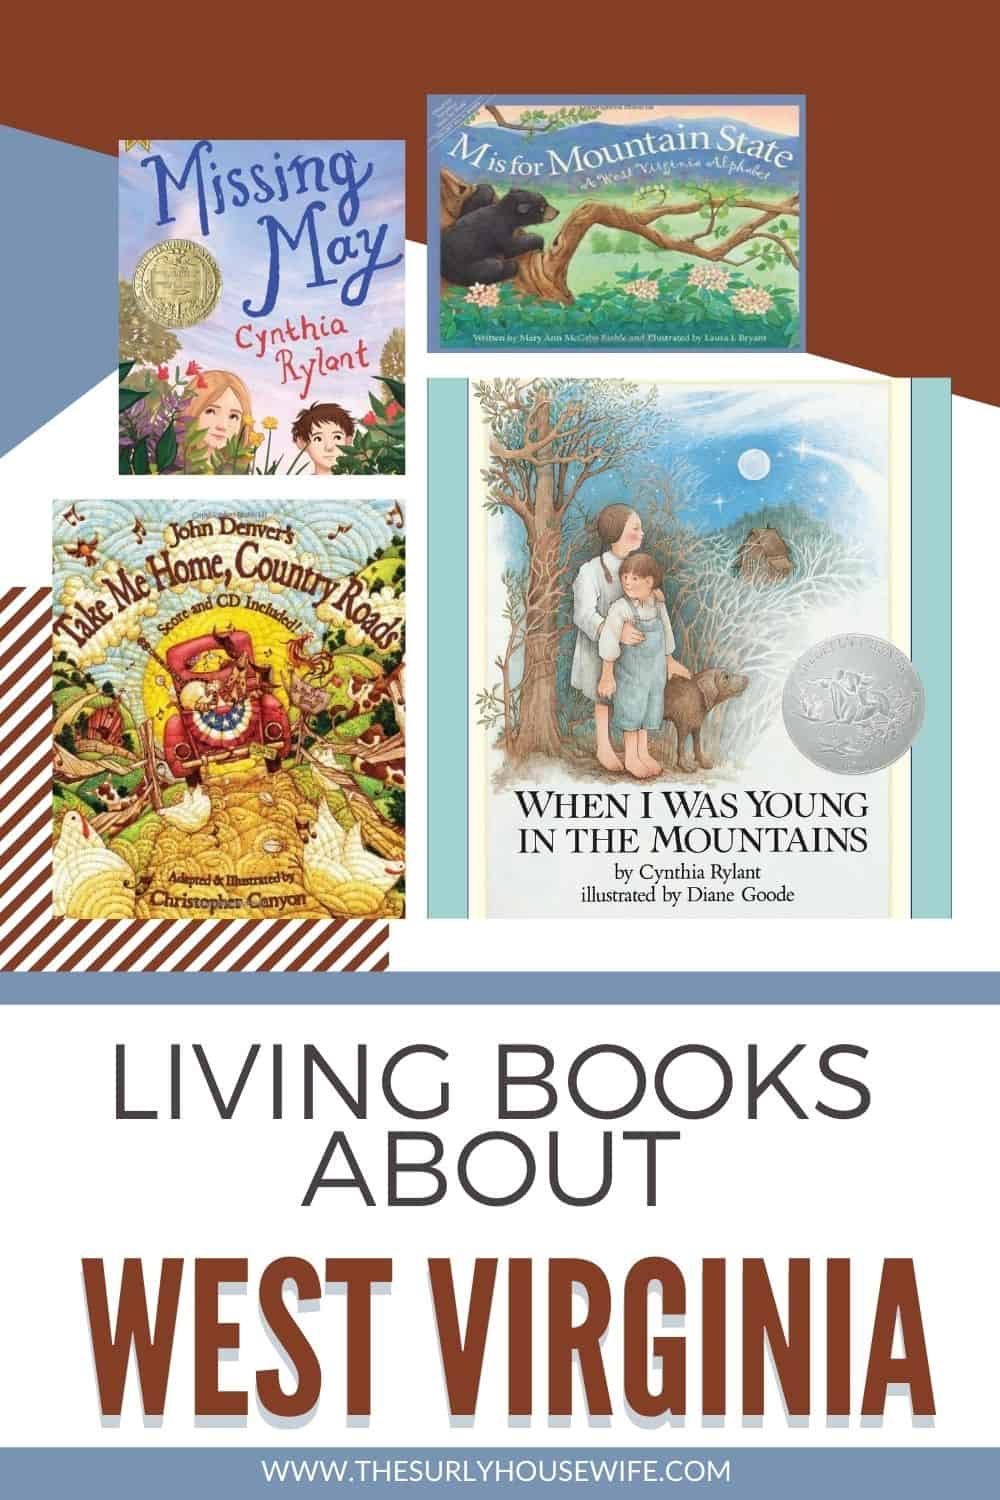 Looking for children's books about West Virginia? This post includes picture books, chapter books, and young adult literature set in West Virginia.